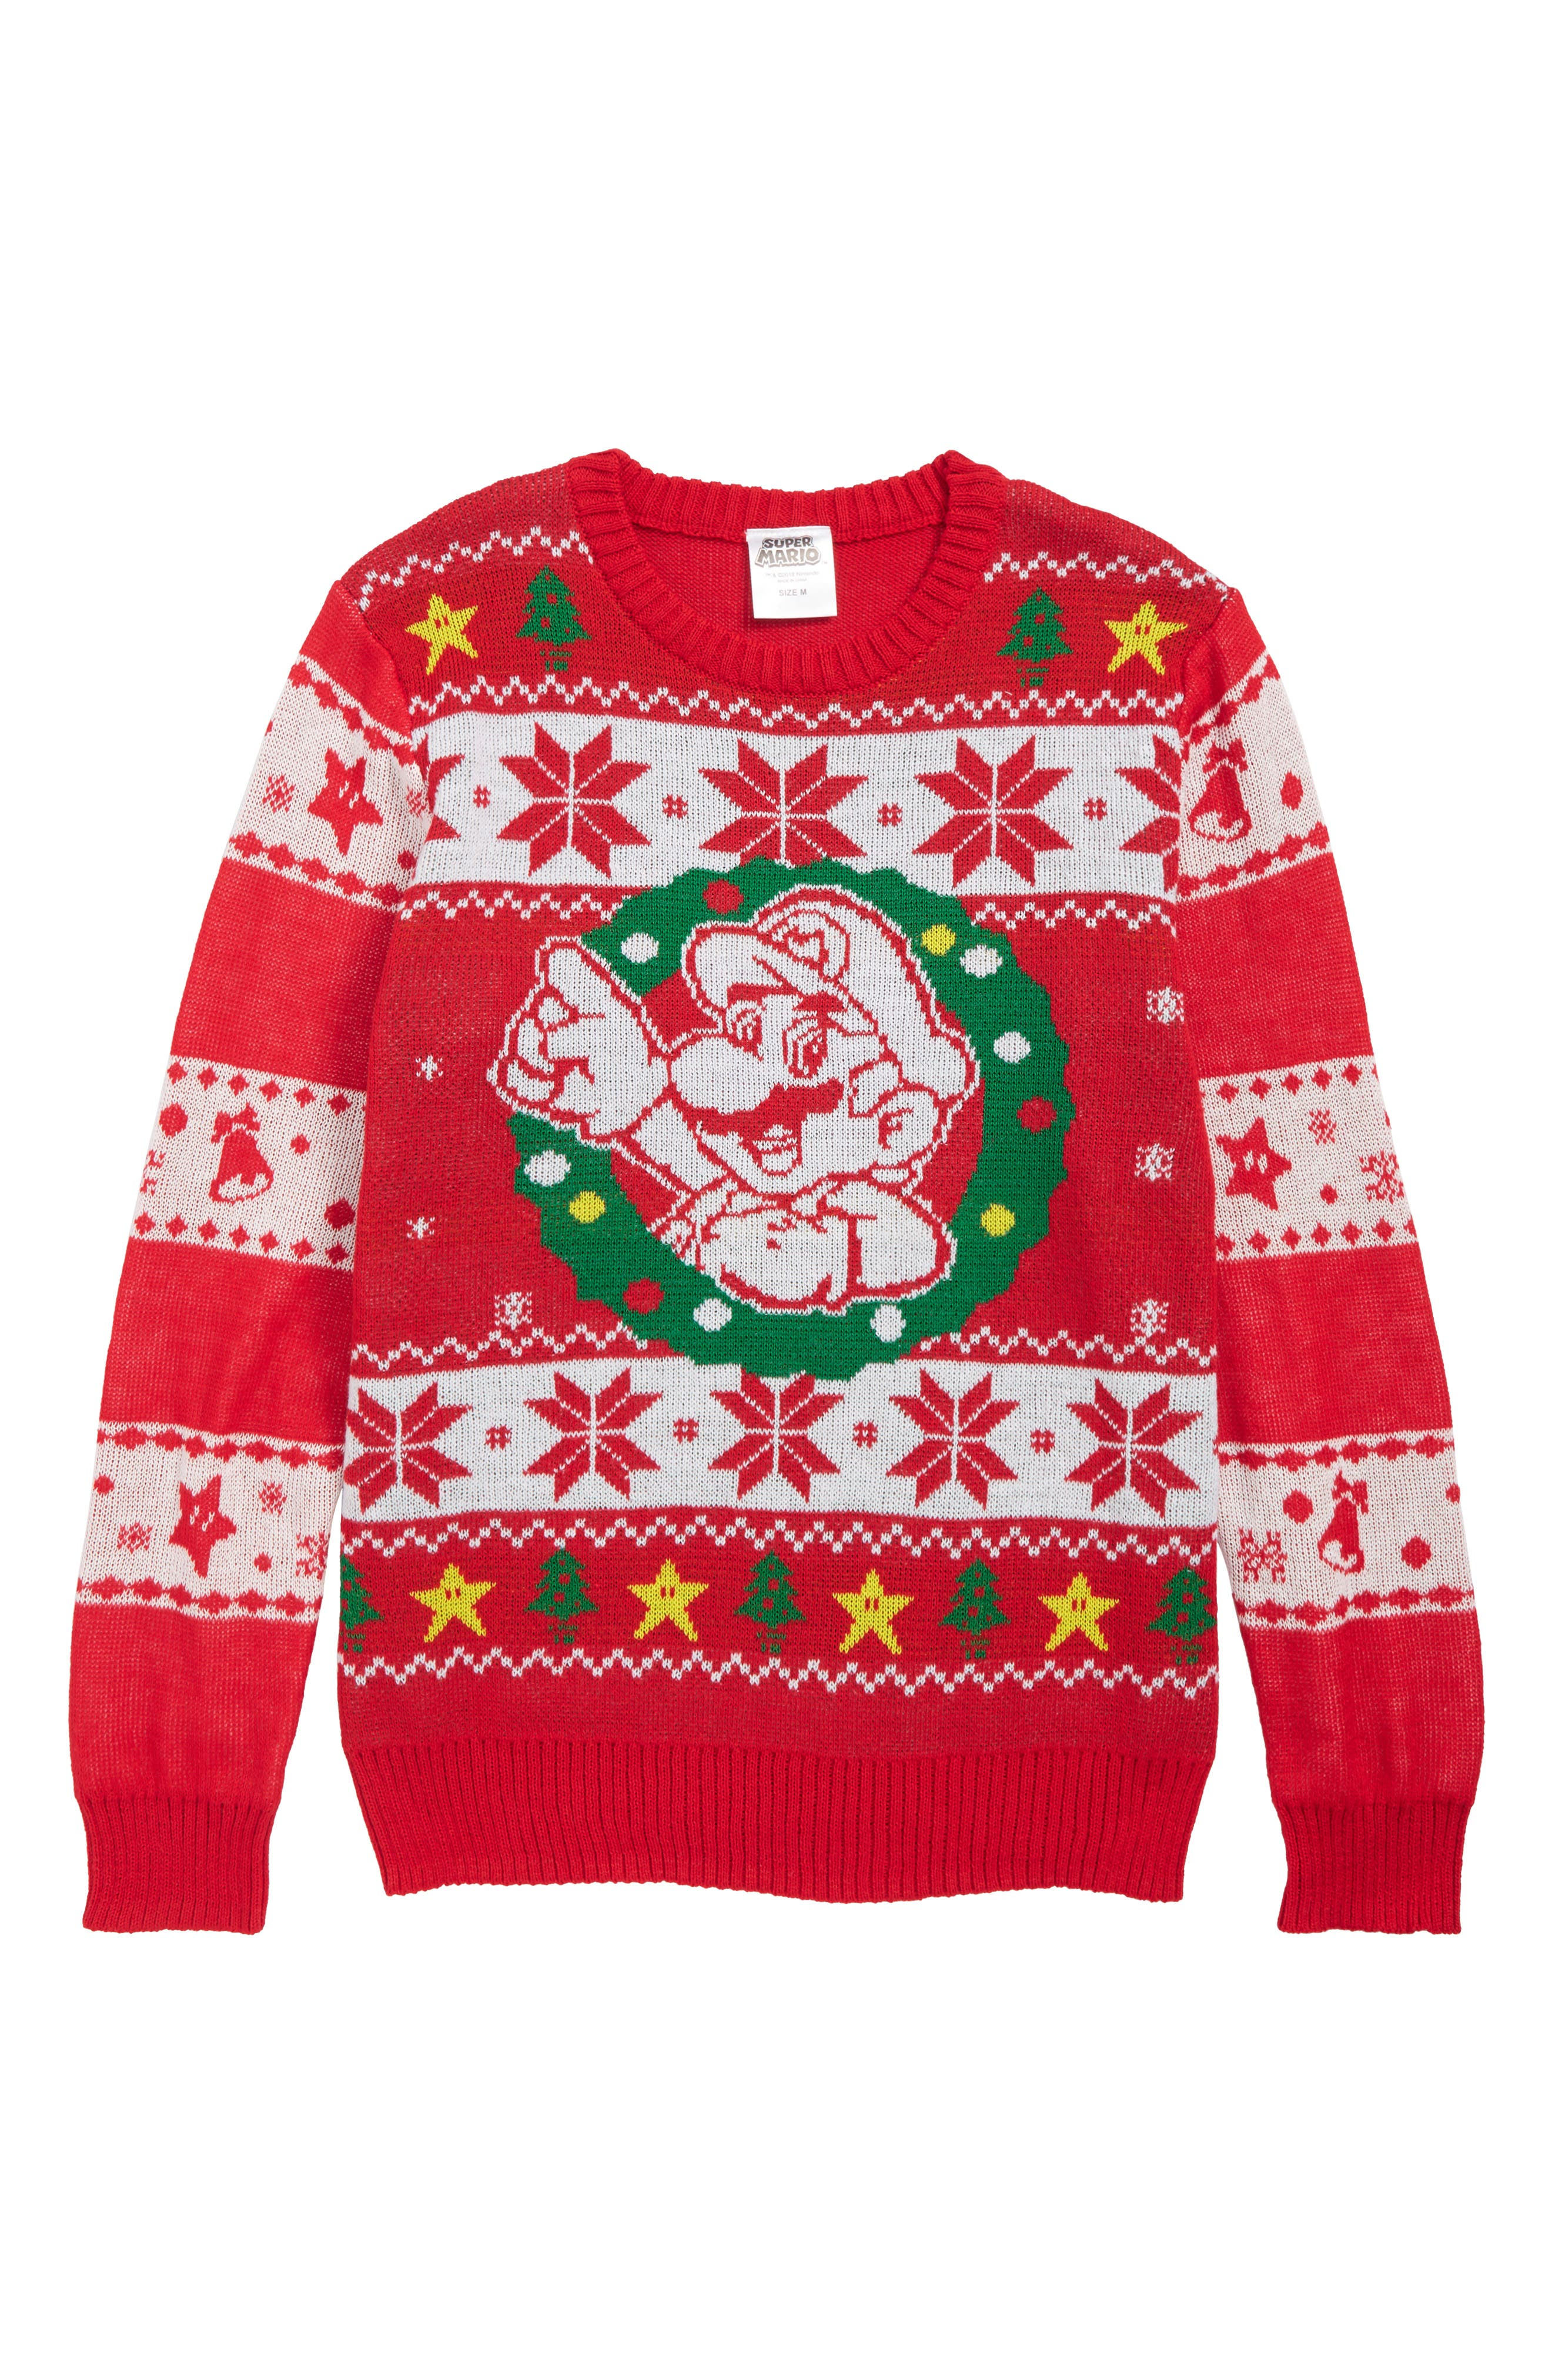 x Nintendo Super Mario<sup>™</sup> Holiday Sweater,                         Main,                         color, RED